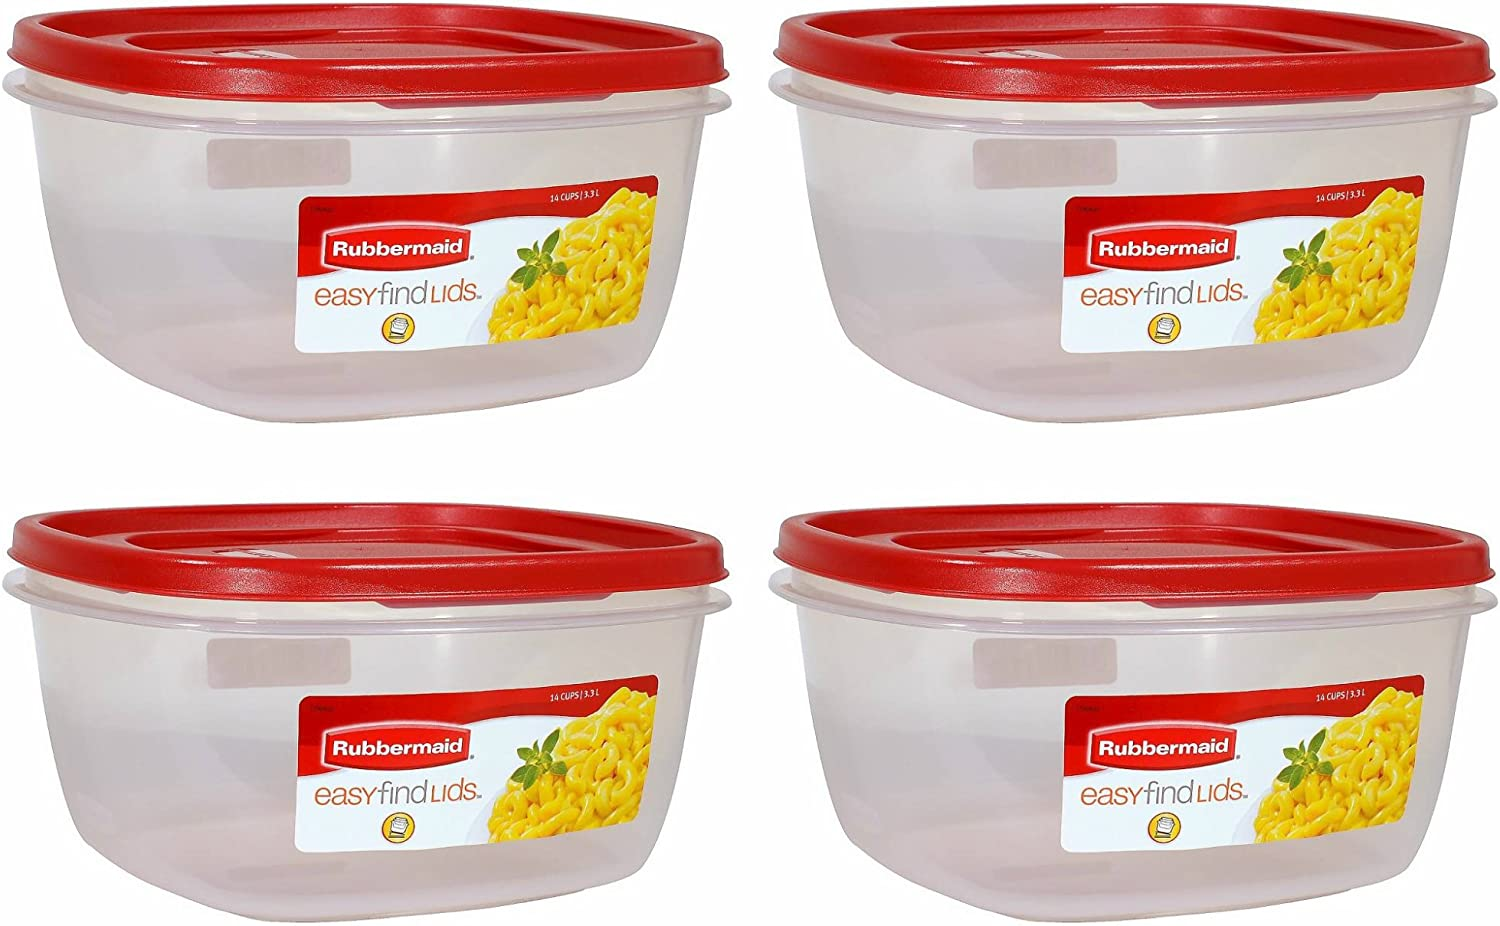 Rubbermaid 1 687965439559 Easy Find Lid Red Food Storage Container, BPA-Free Plastic, 14 Cup Pack of 4, 4-Pack